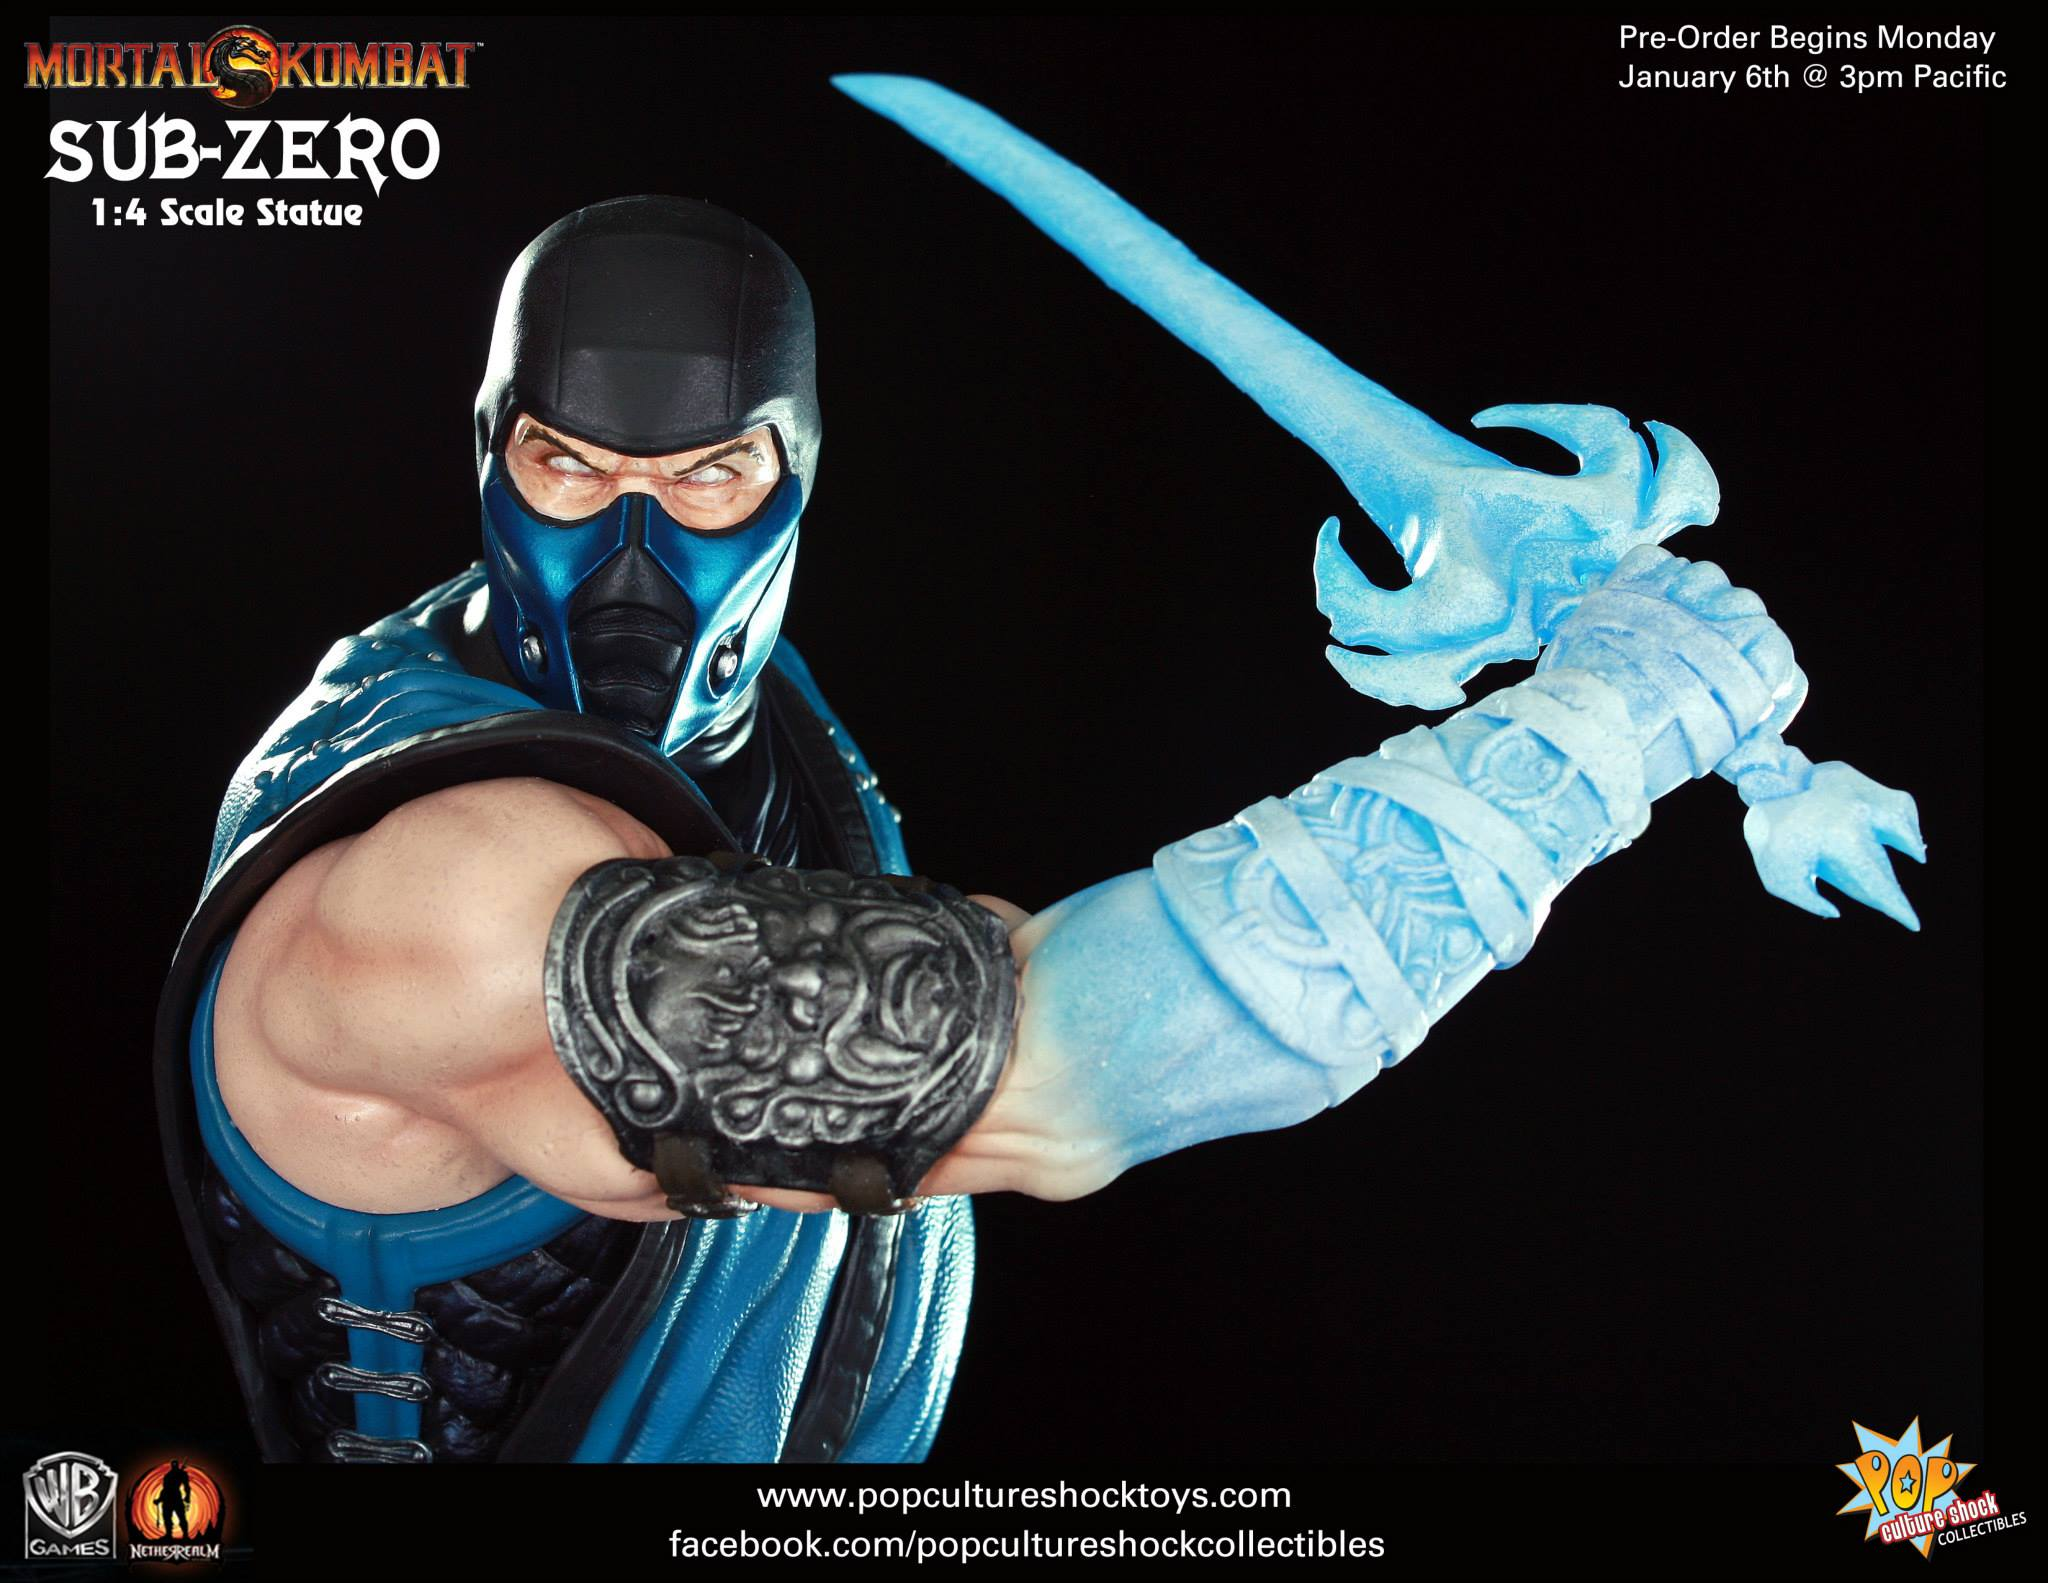 Pop Culture Shock Reveals Mortal Kombat Sub Zero Statue